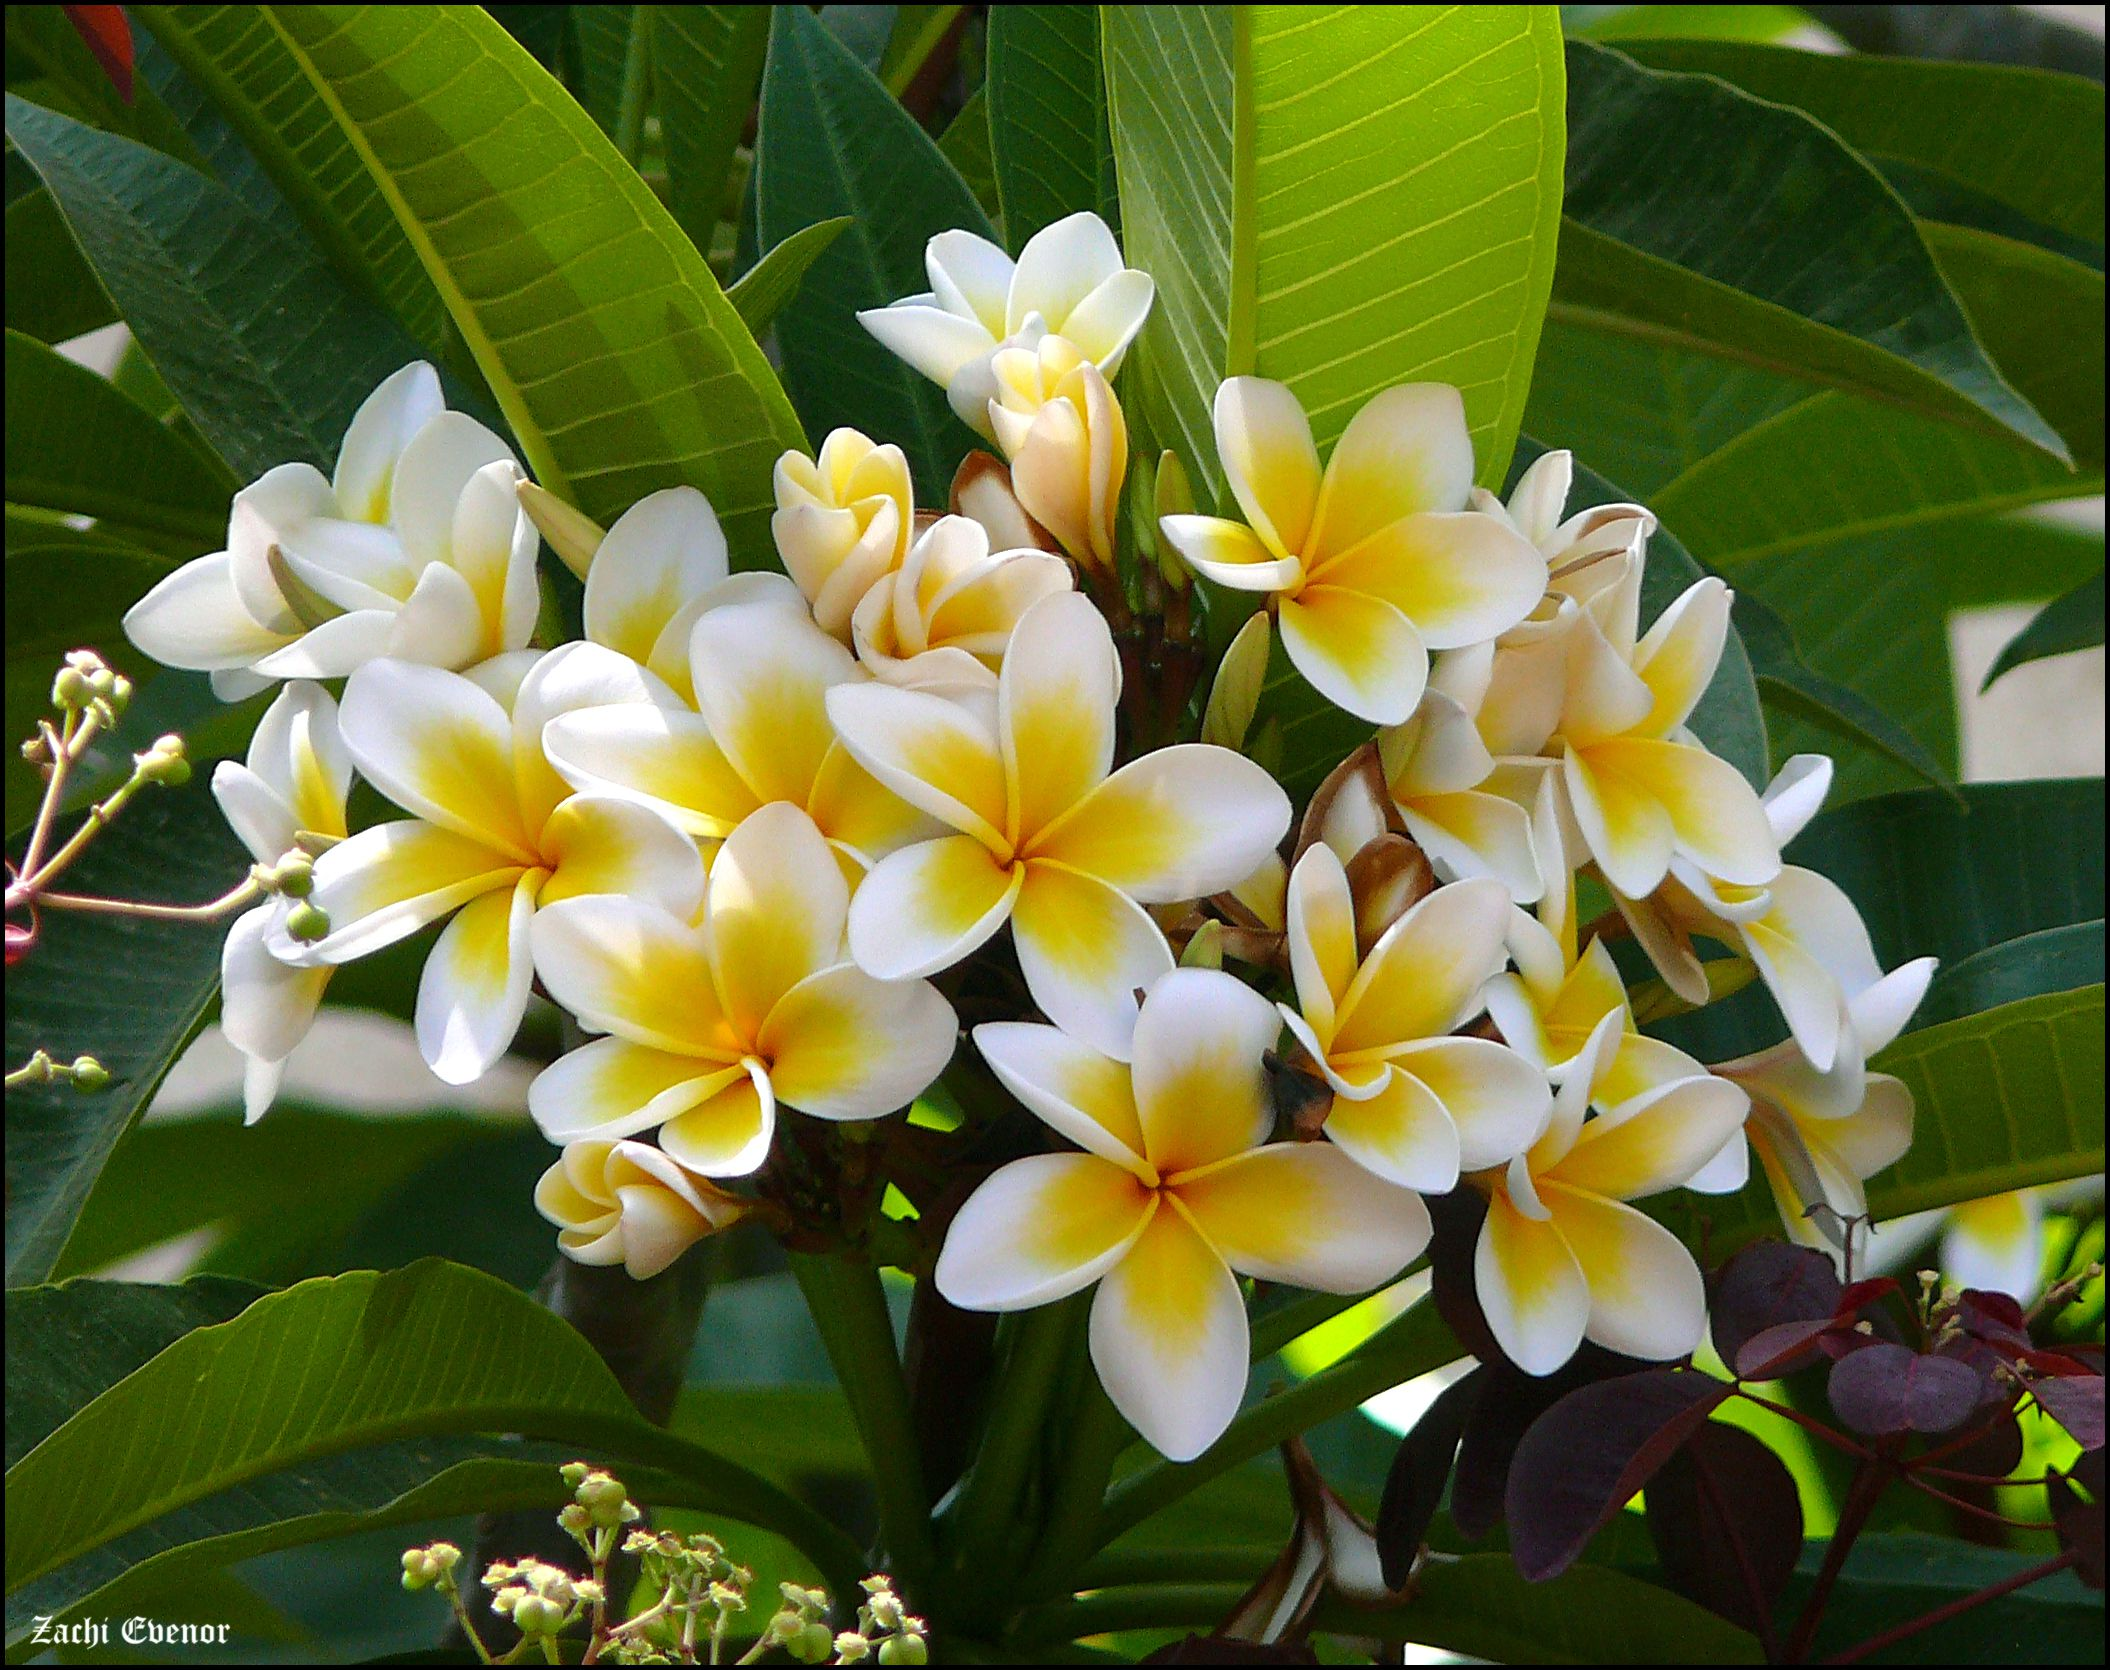 Growing The White Frangipani Plumeria Alba In The Home